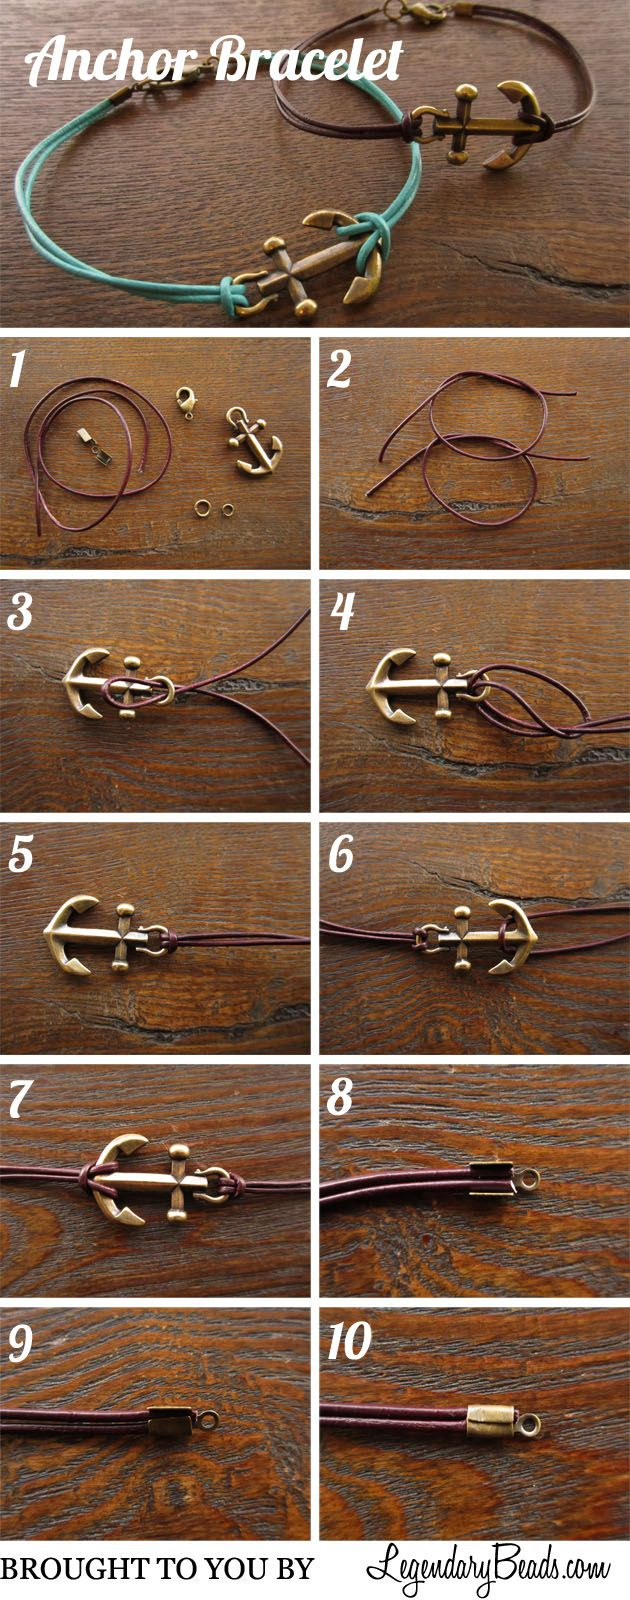 Legendary Beads: Anchor Bracelet, various other tutorials